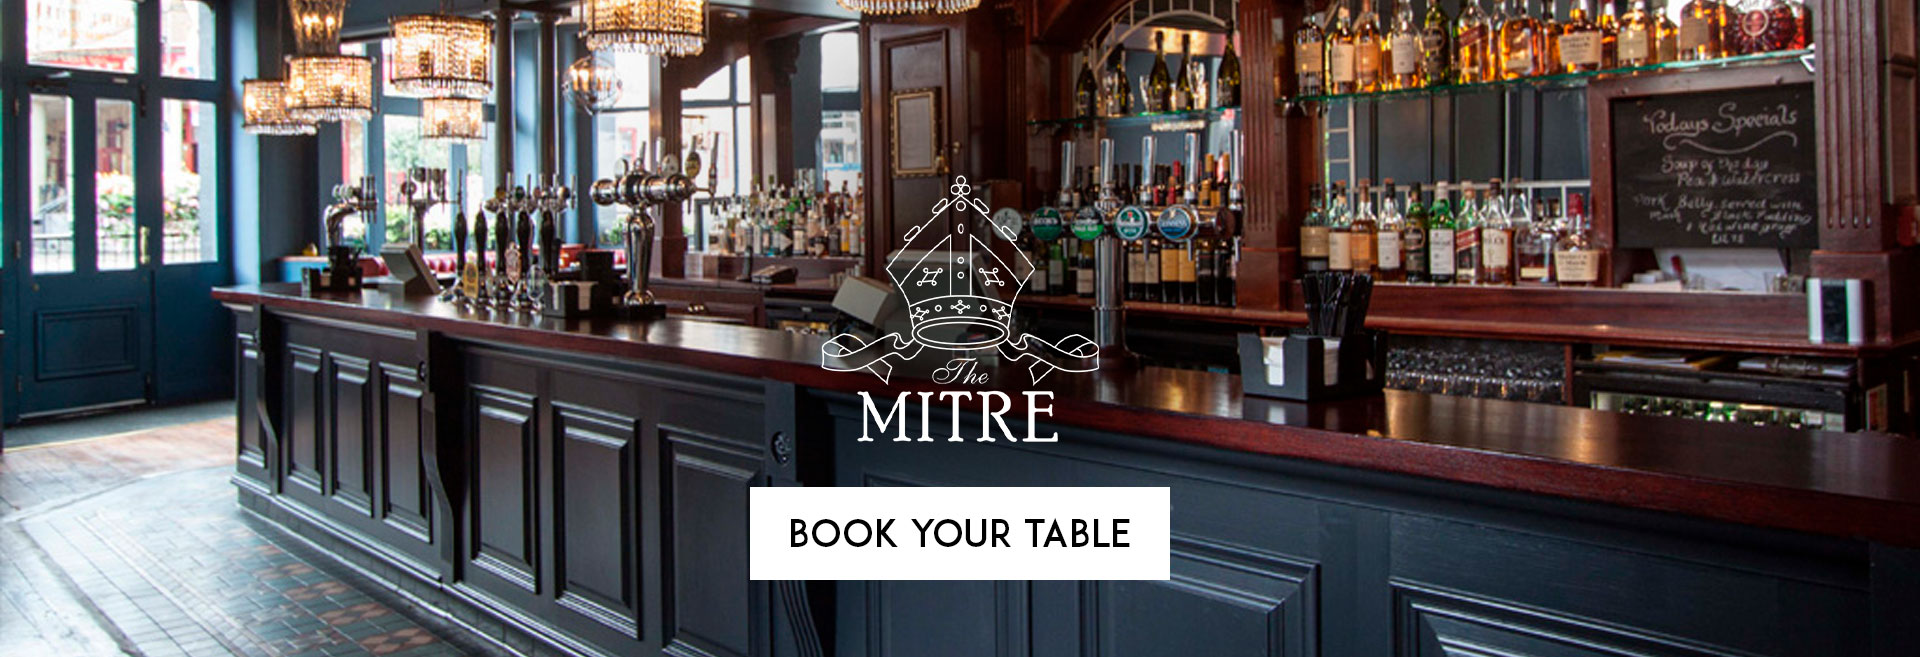 Book Your Table at The Mitre